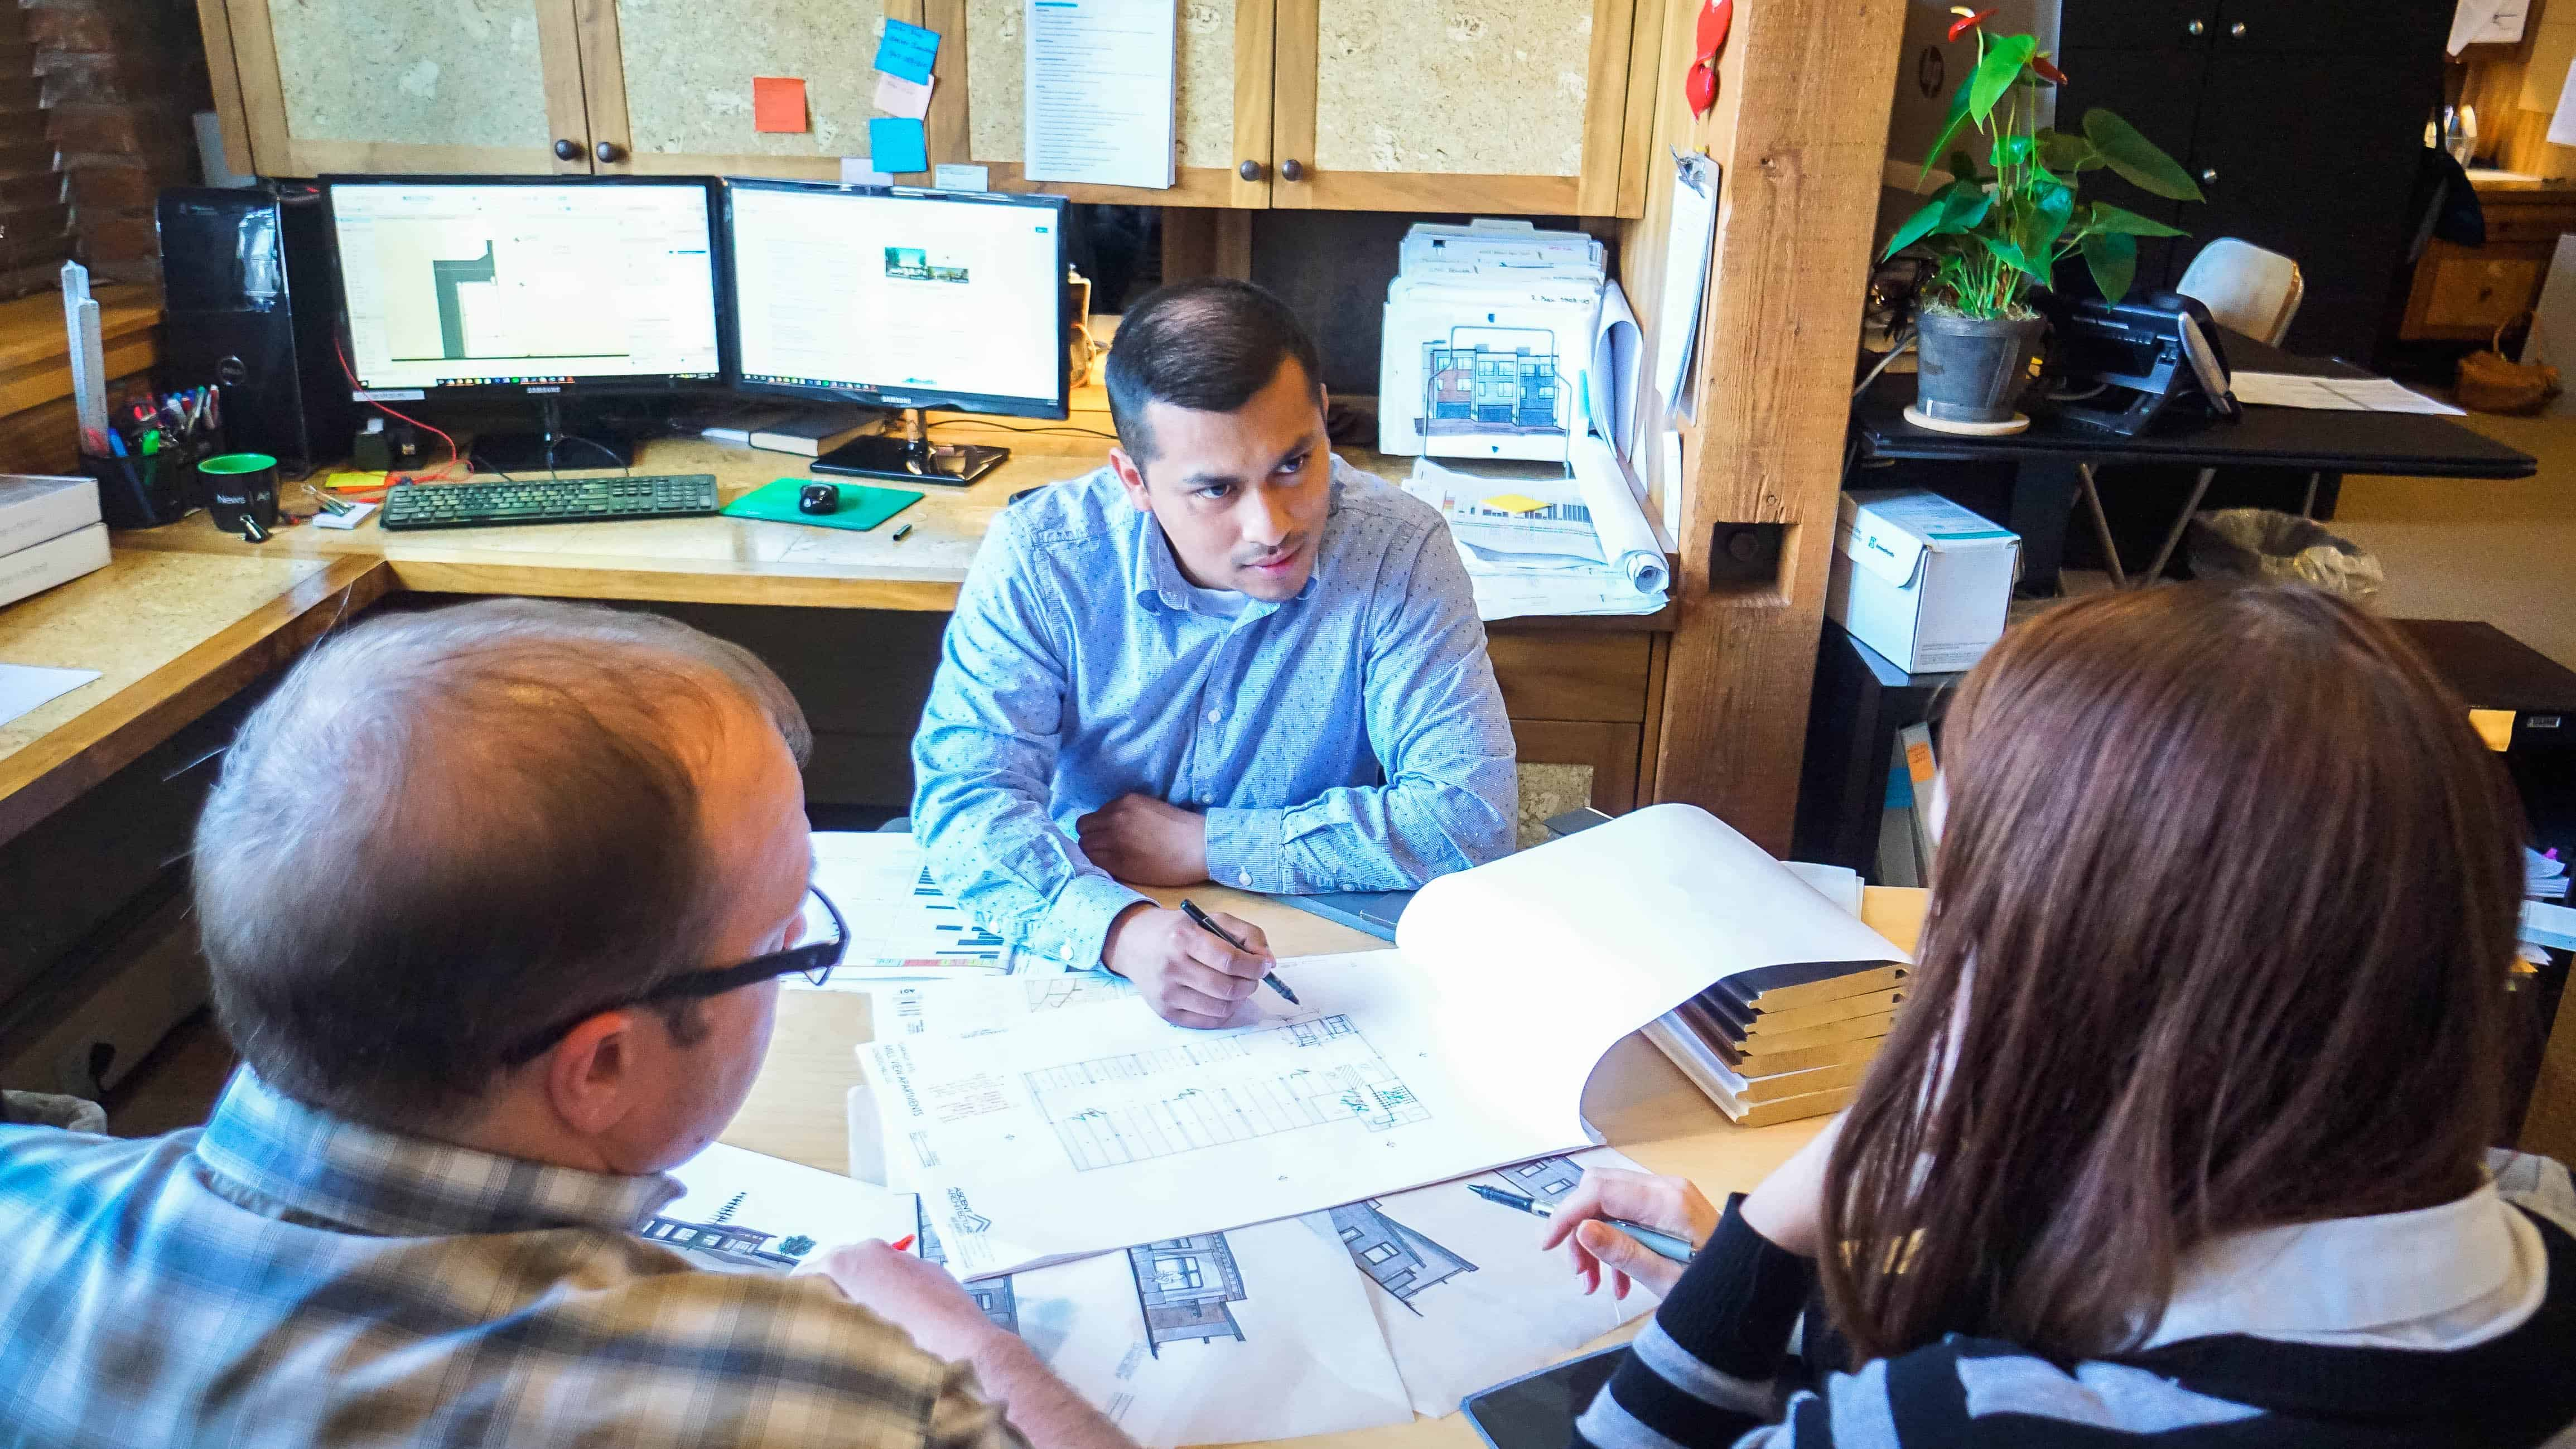 architect careers bend architects careers in interior design